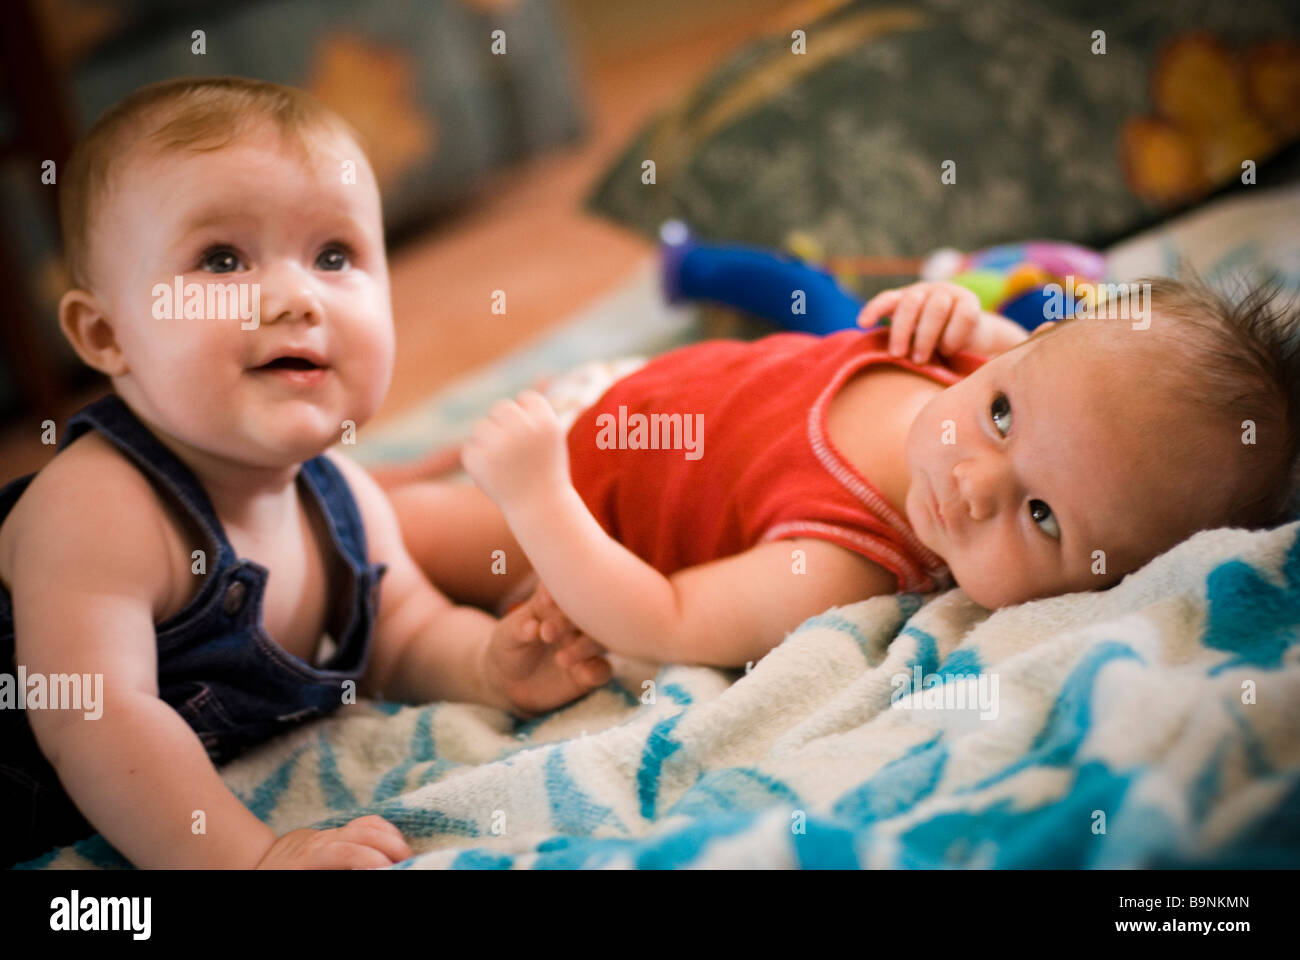 Two babies laying on blanket - Stock Image